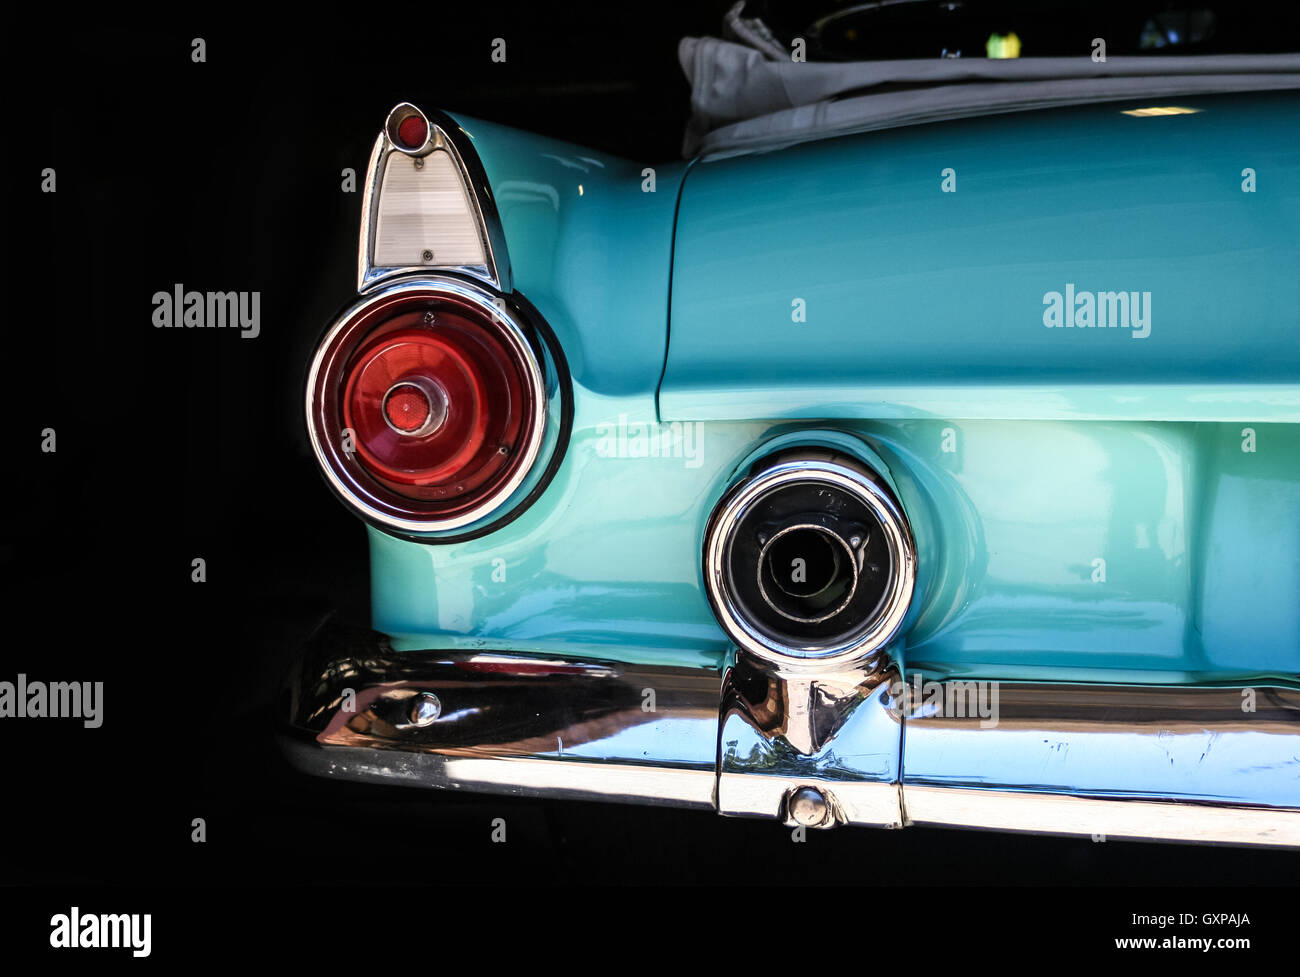 Chrome rear tail lights, bumper and exhaust of convertable turquoise vintage car. - Stock Image